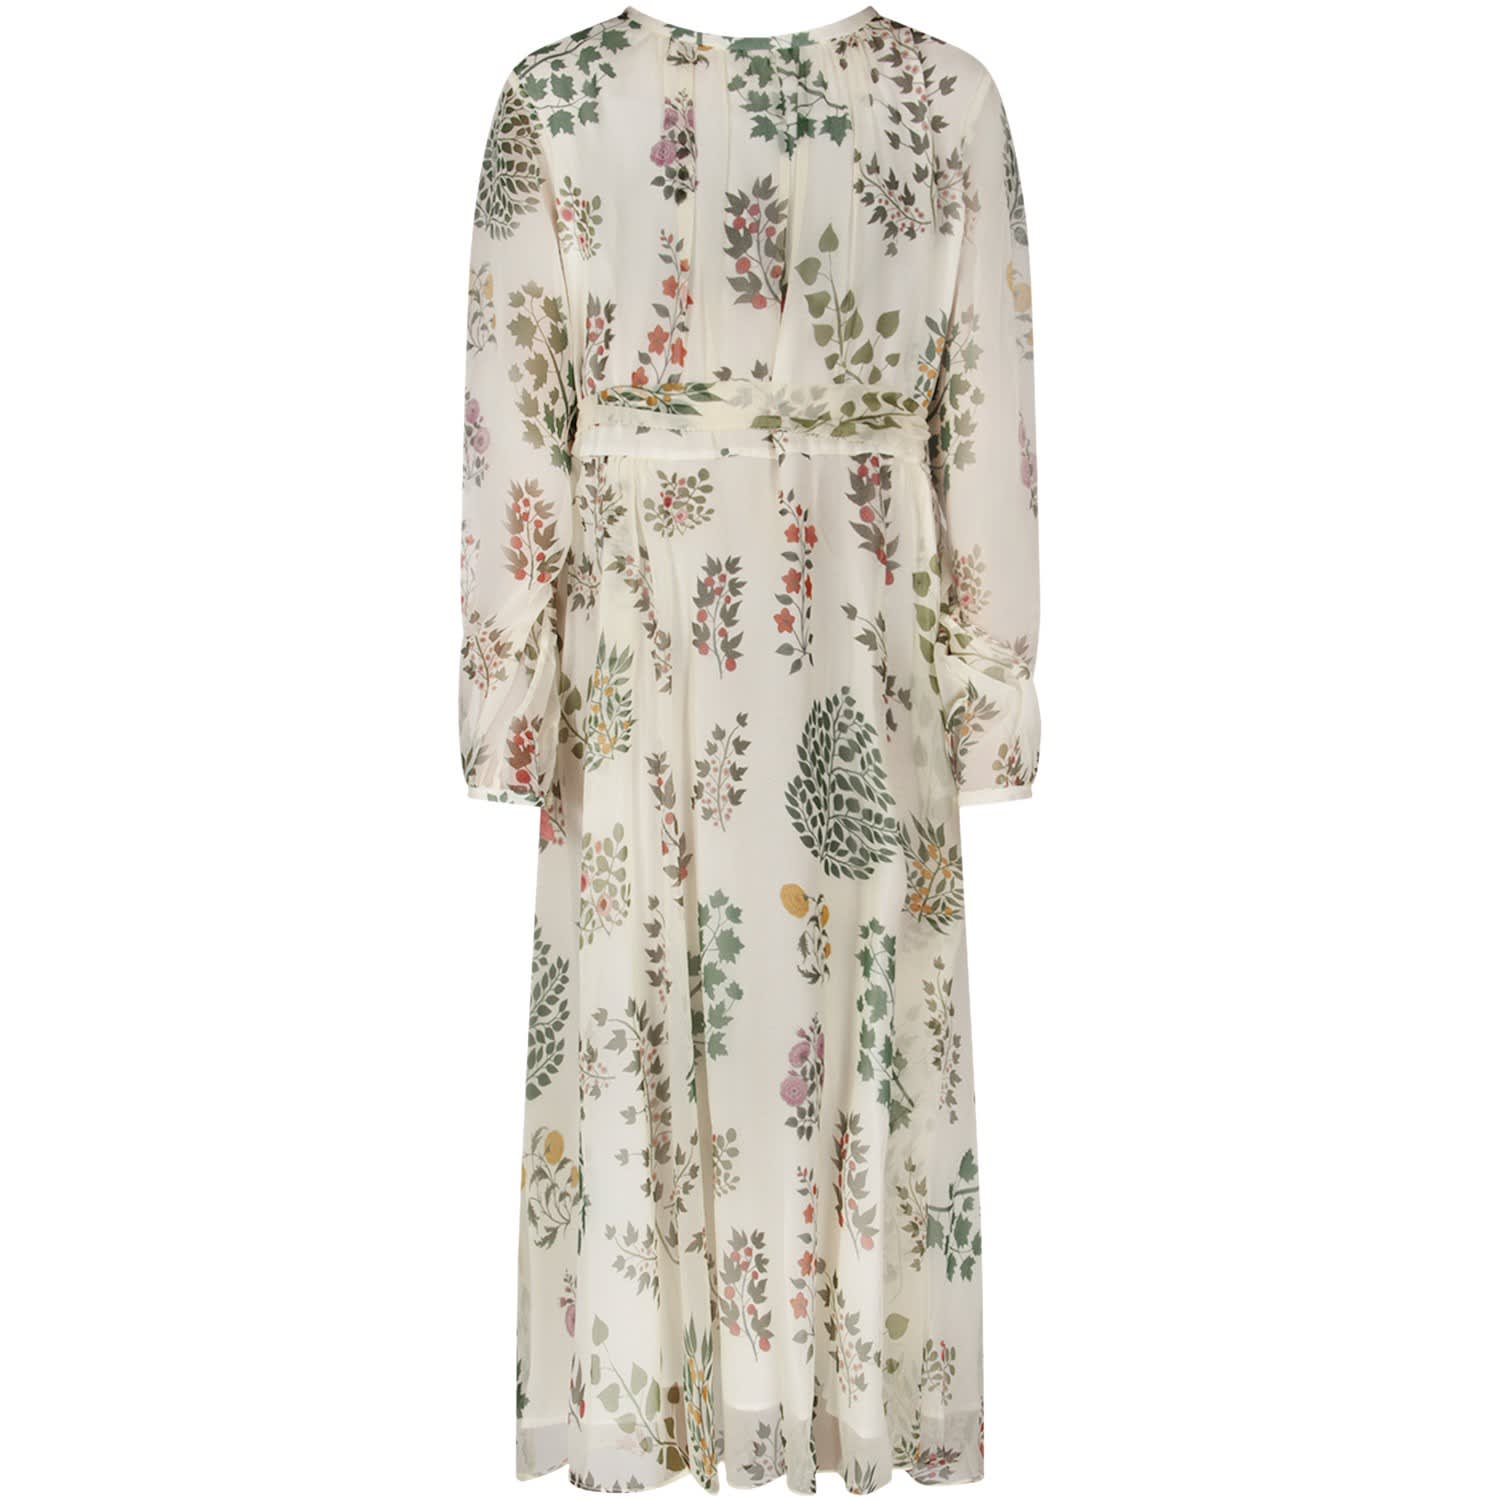 Oscar de la Renta Ivory Girl Dress With Colorful Flowers